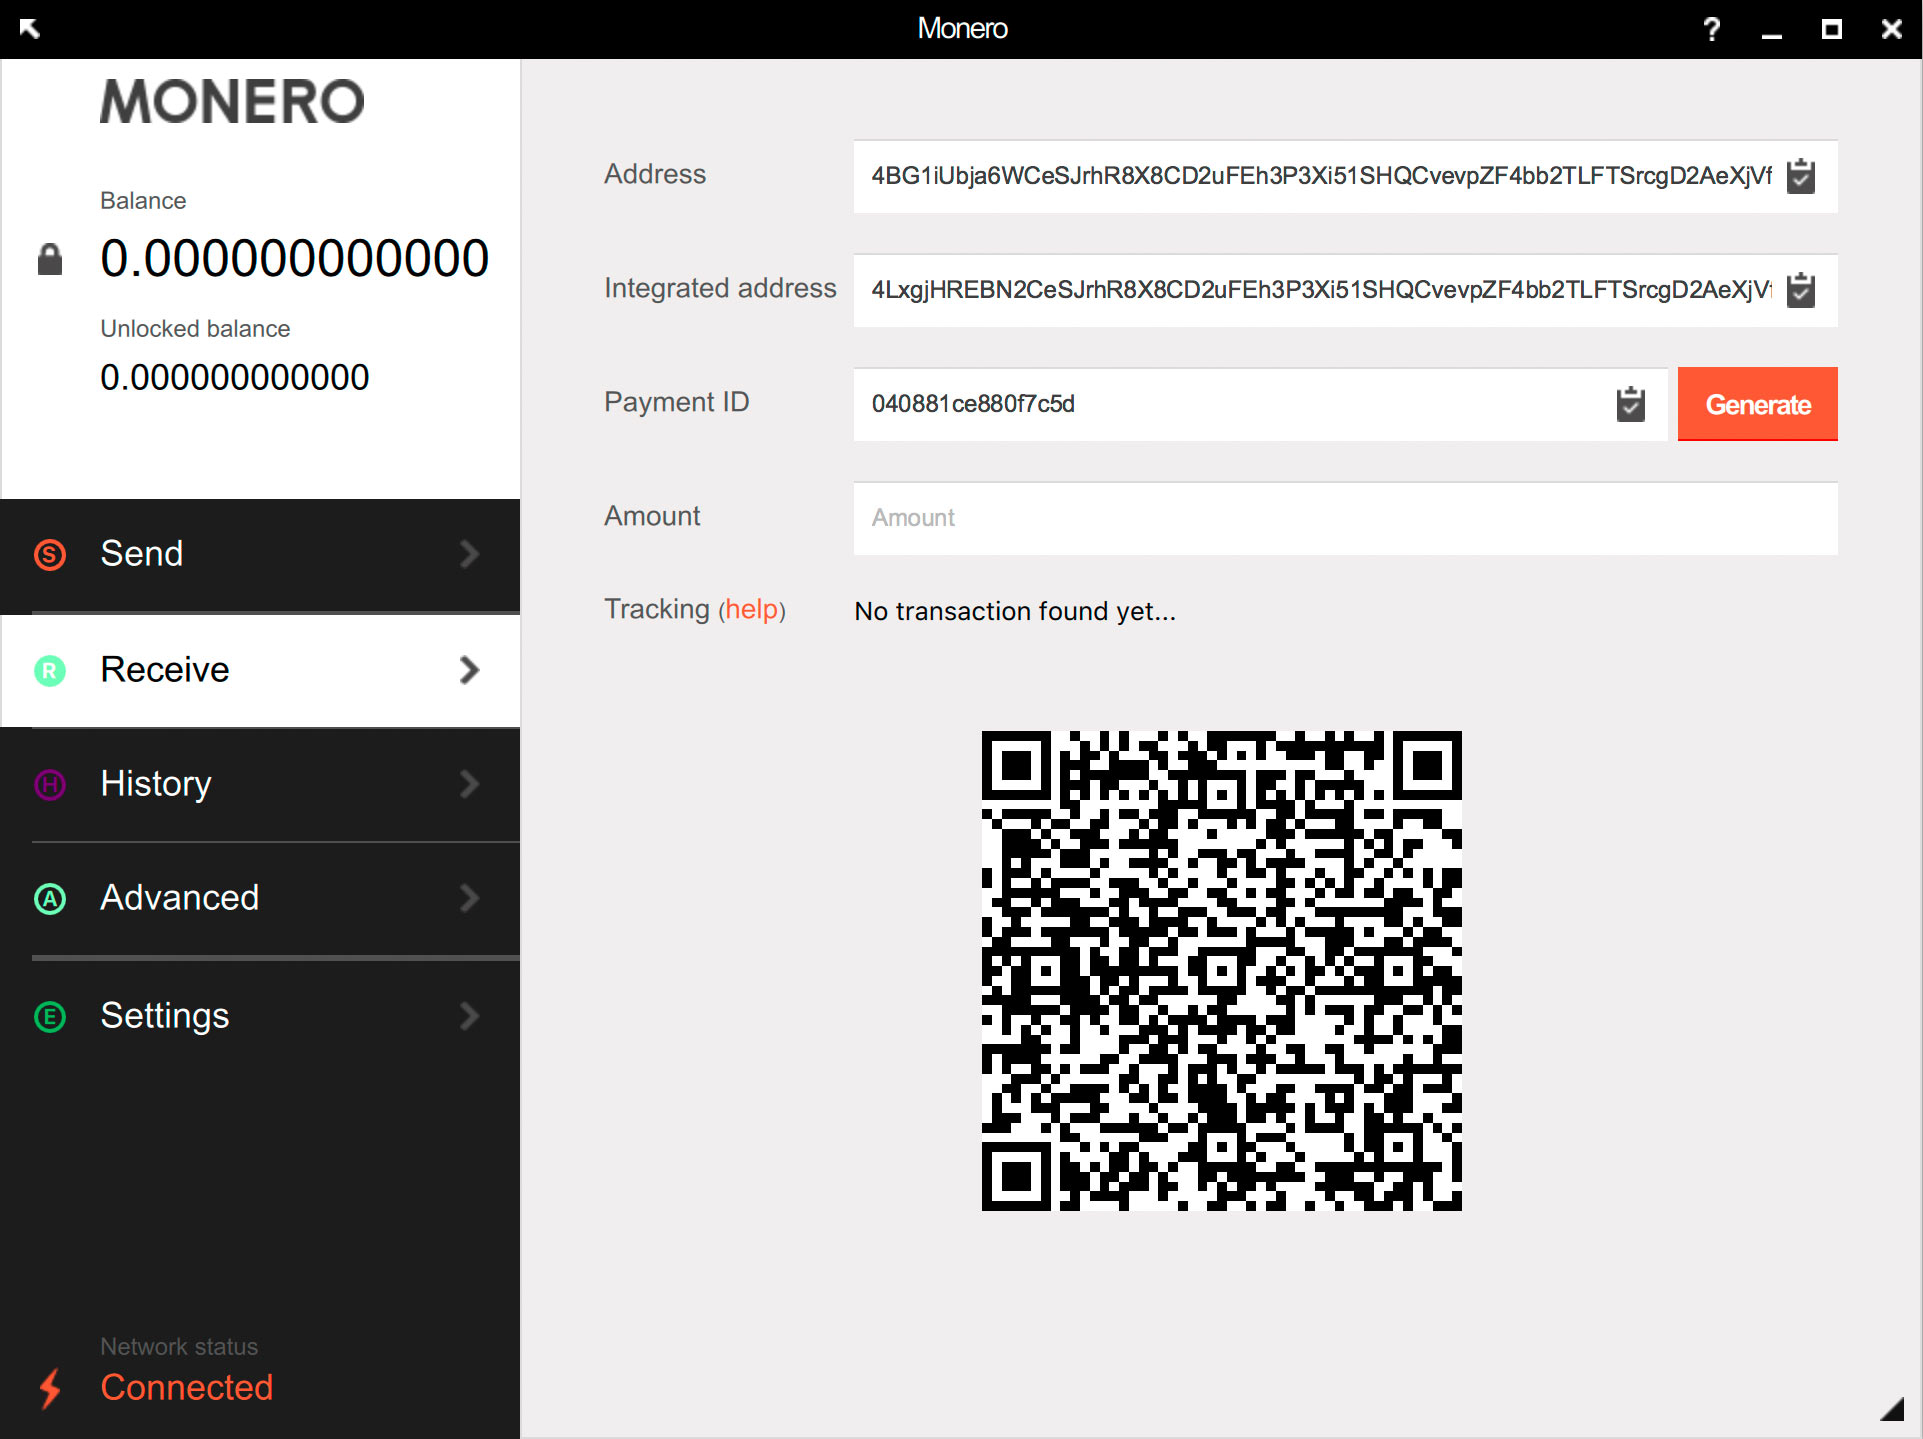 Your Monero Wallet Has A Unique Public Address This Is Referred To As Just In The Screenshot If You Want Someone Send Funds